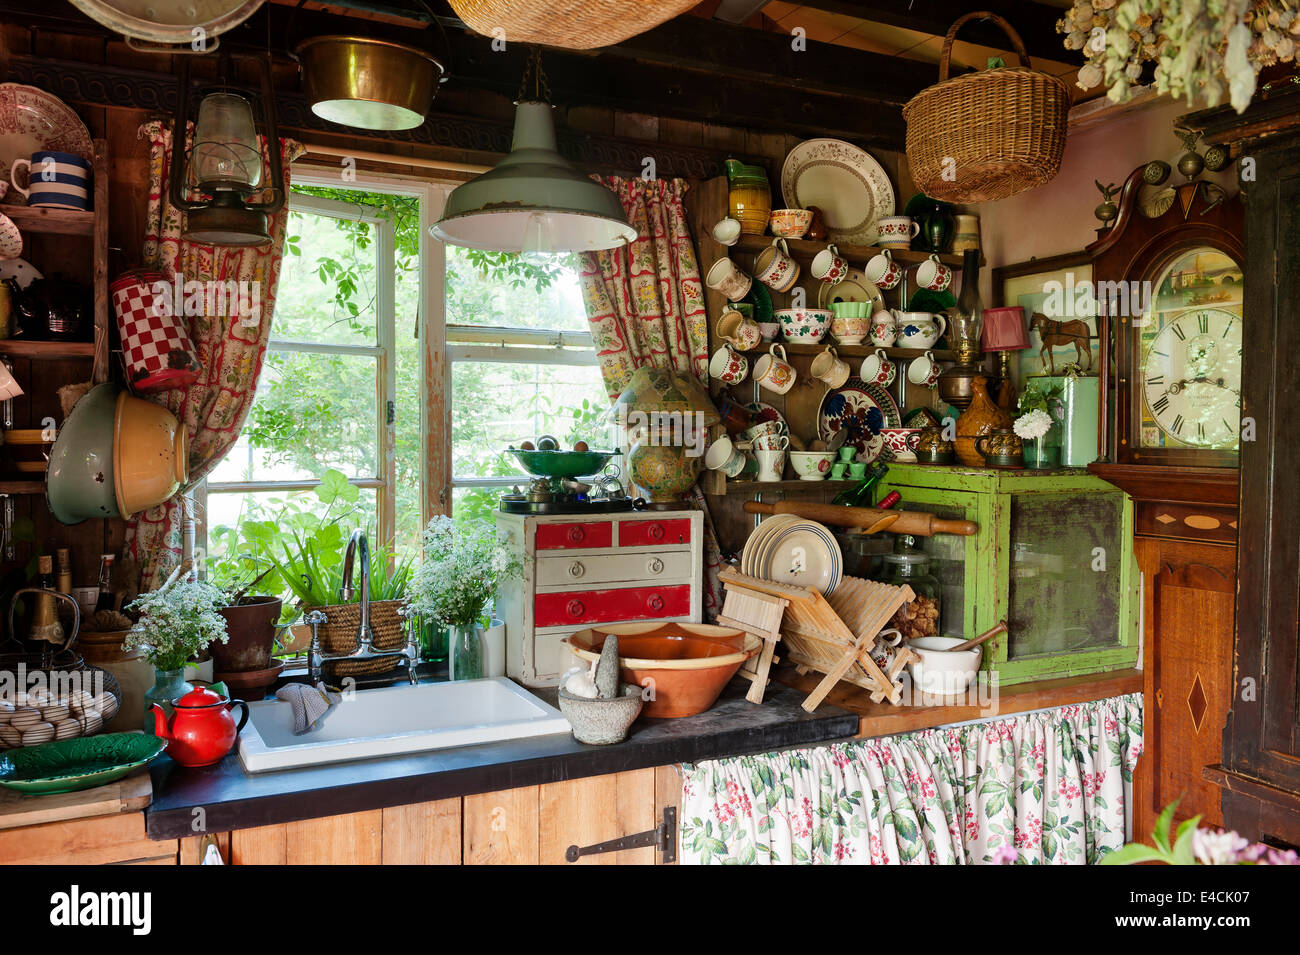 Sink area in shabby chic country kitchen with china adorning every surface and a grandfather clock in the corner - Stock Image